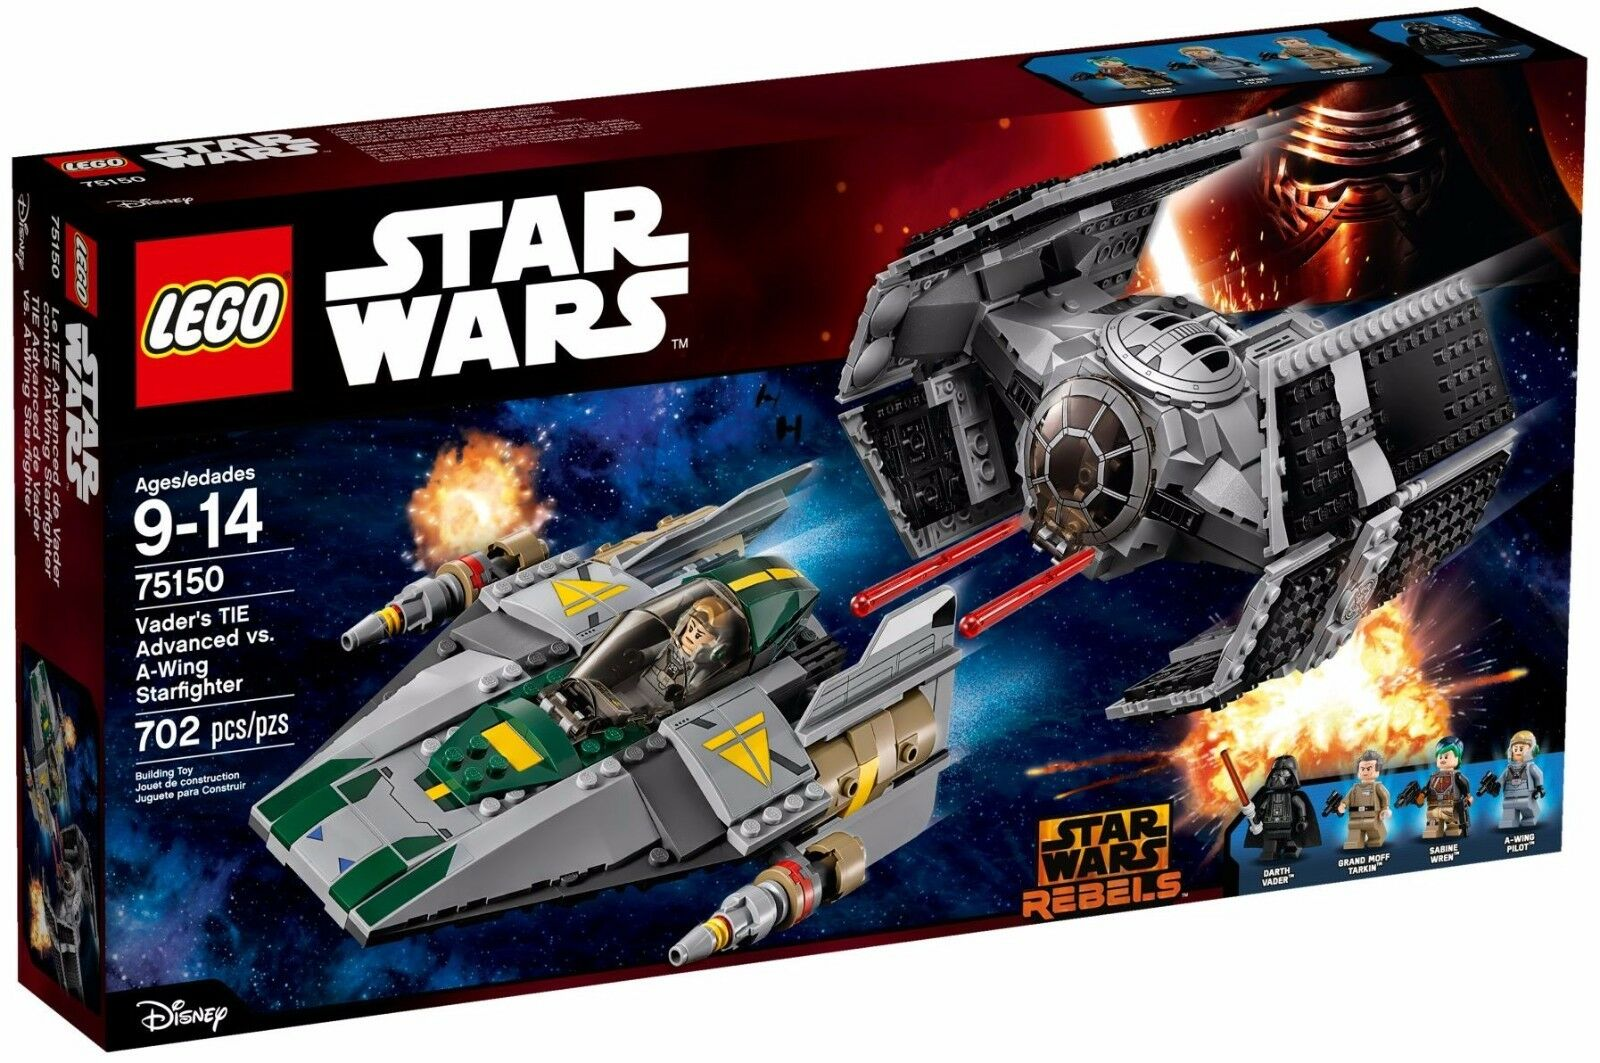 Lego Star Wars - 75150 75150 75150 - Le TIE Advanced de Dark Vador - NEUF et Scellé 2a97b2